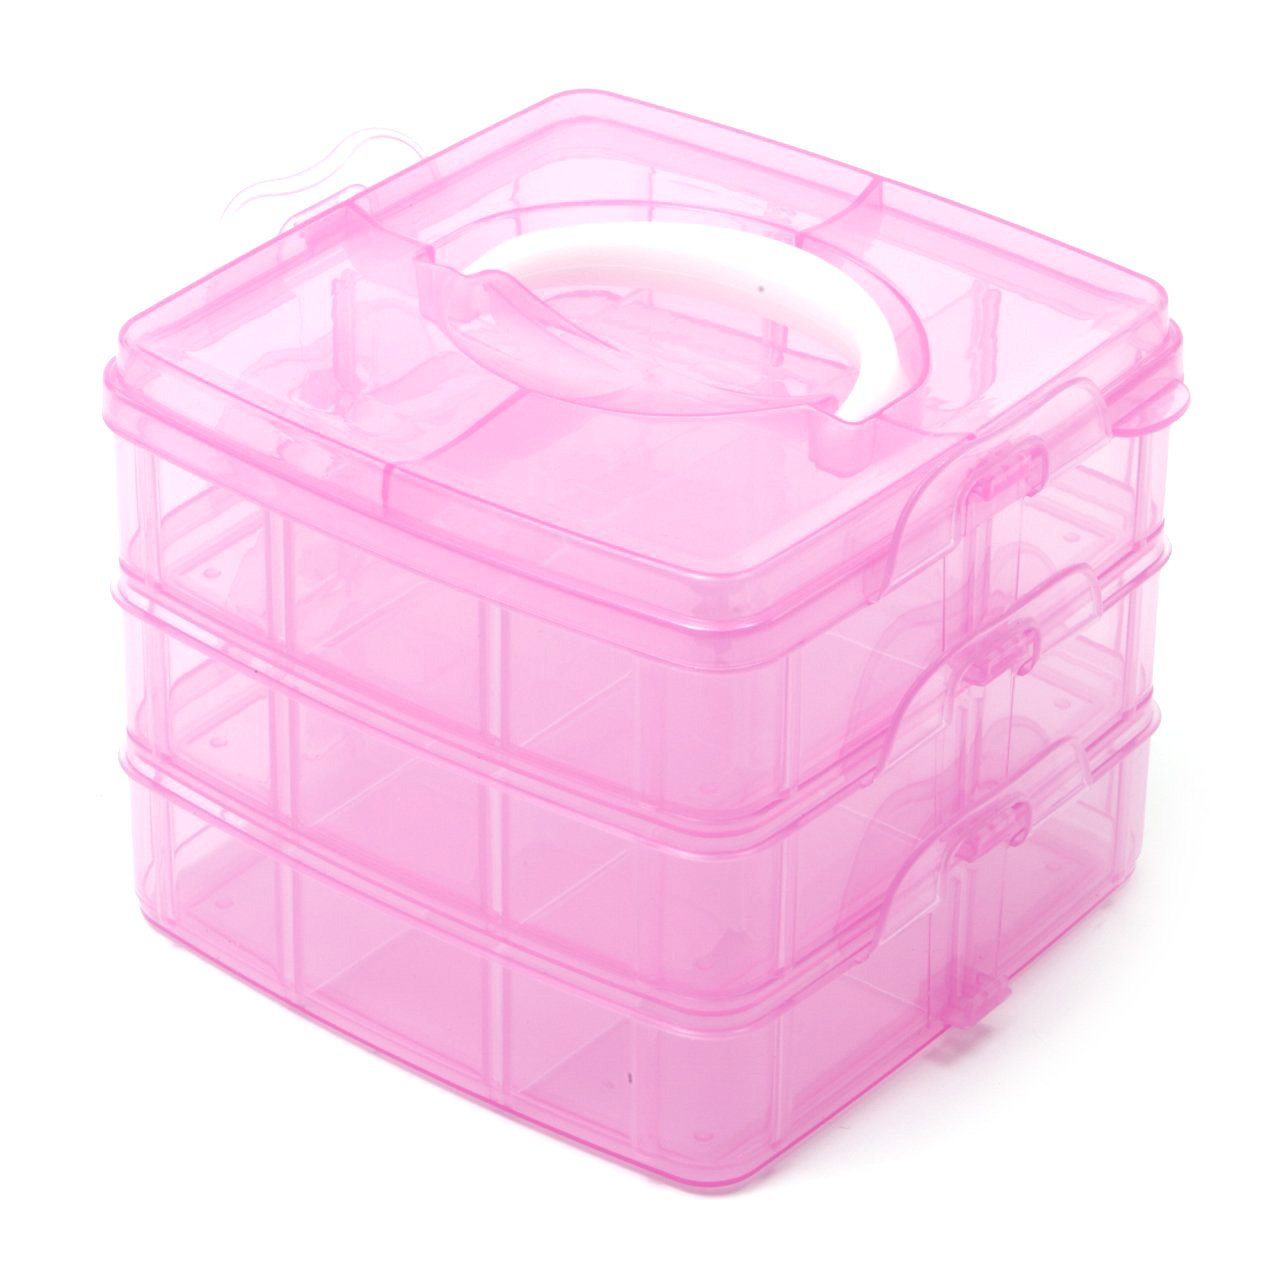 Plastic craft storage boxes - Pink 3 Tier Adjustable 18 Compartment Slot Plastic Craft Storage Box Jewellery Tool Container Small